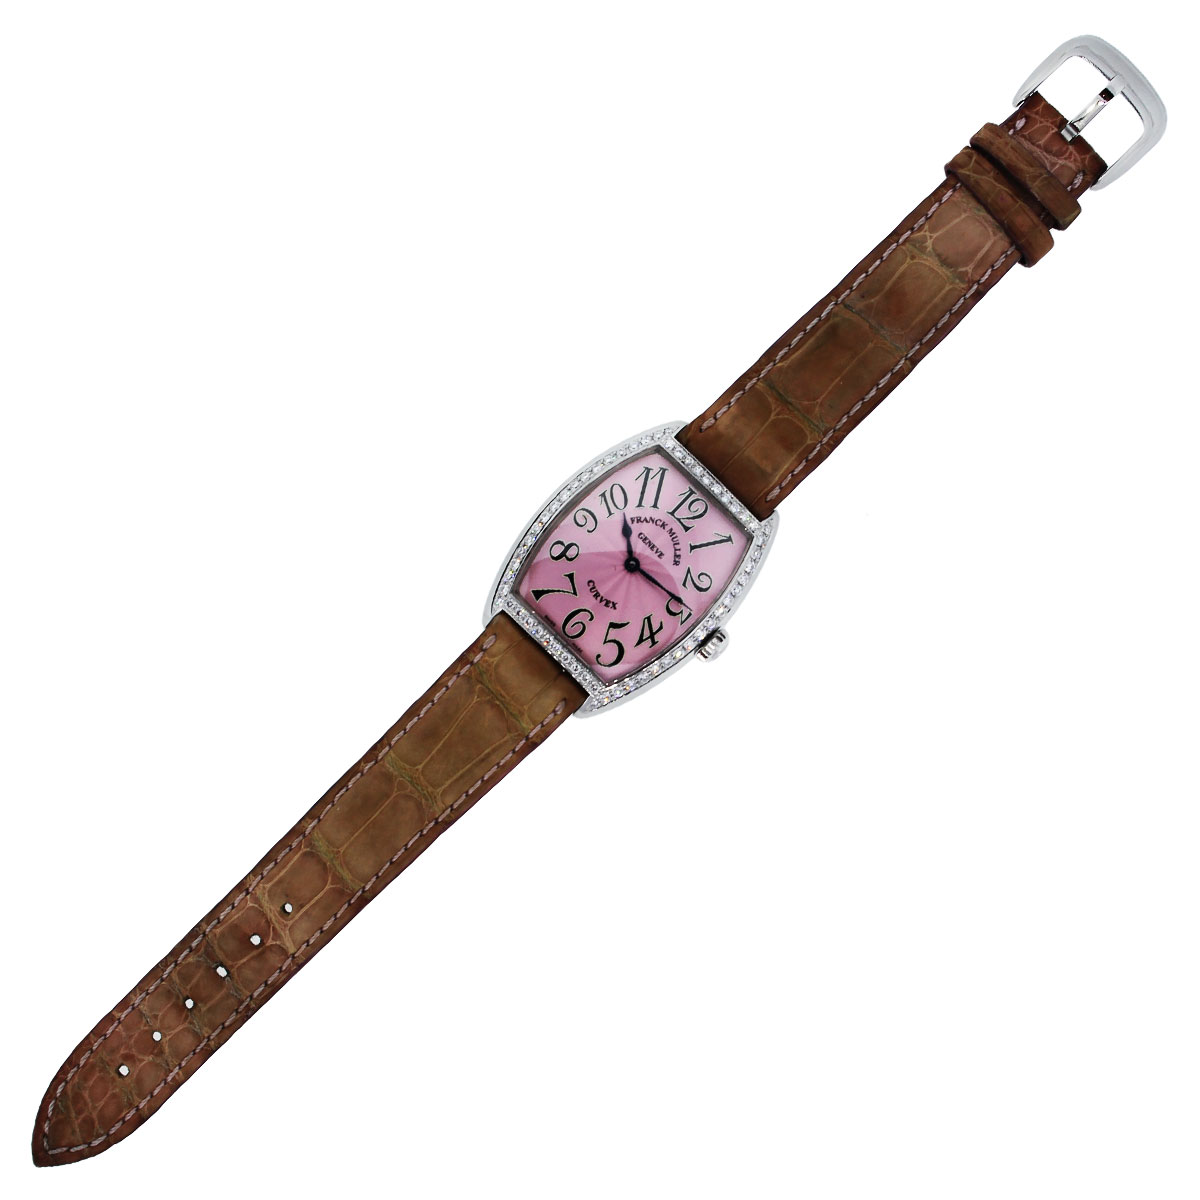 Franck Muller watches